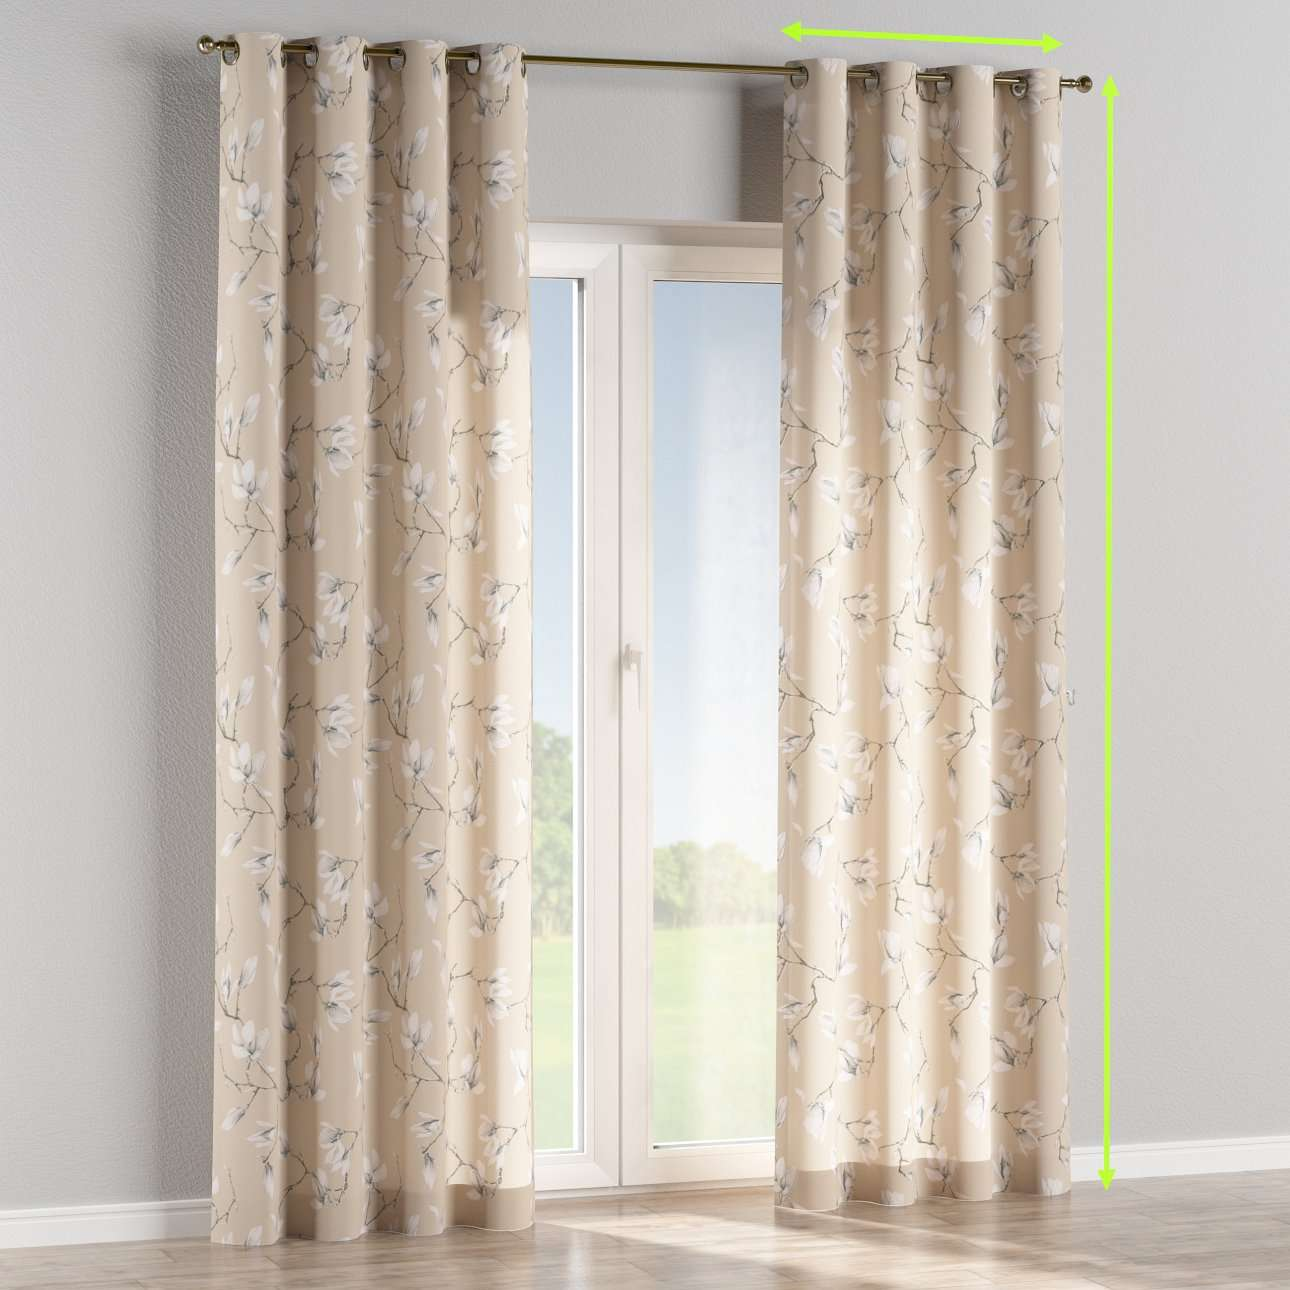 Eyelet lined curtains in collection Flowers, fabric: 311-12